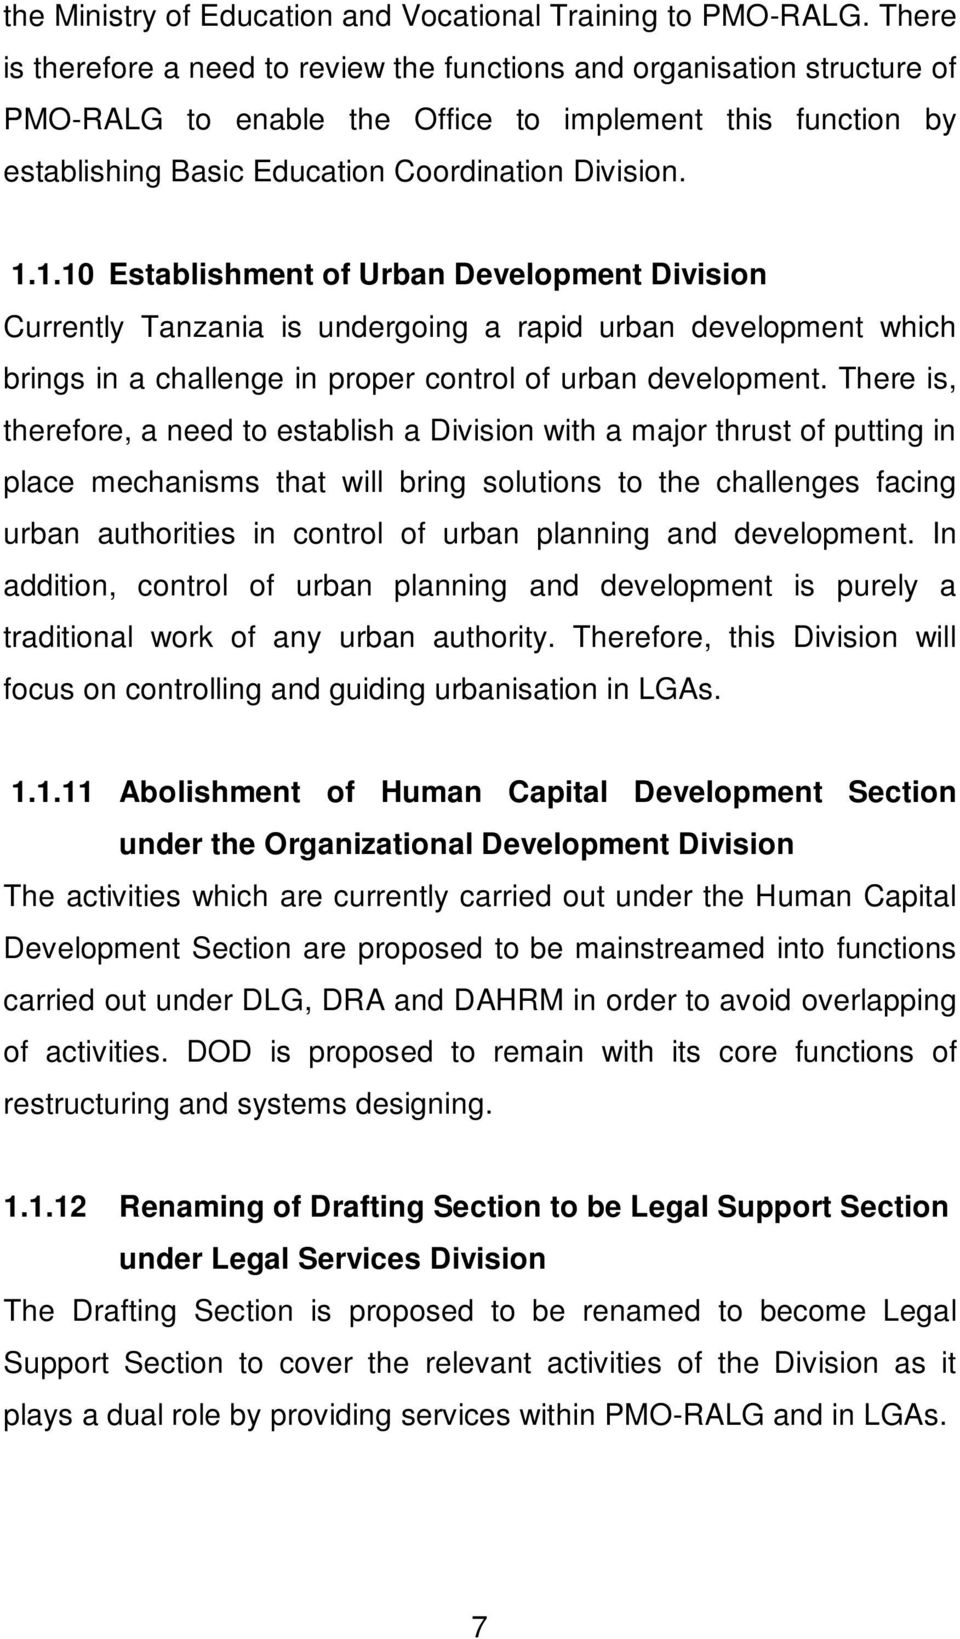 1.10 Establishment of Urban Development Division Currently Tanzania is undergoing a rapid urban development which brings in a challenge in proper control of urban development.